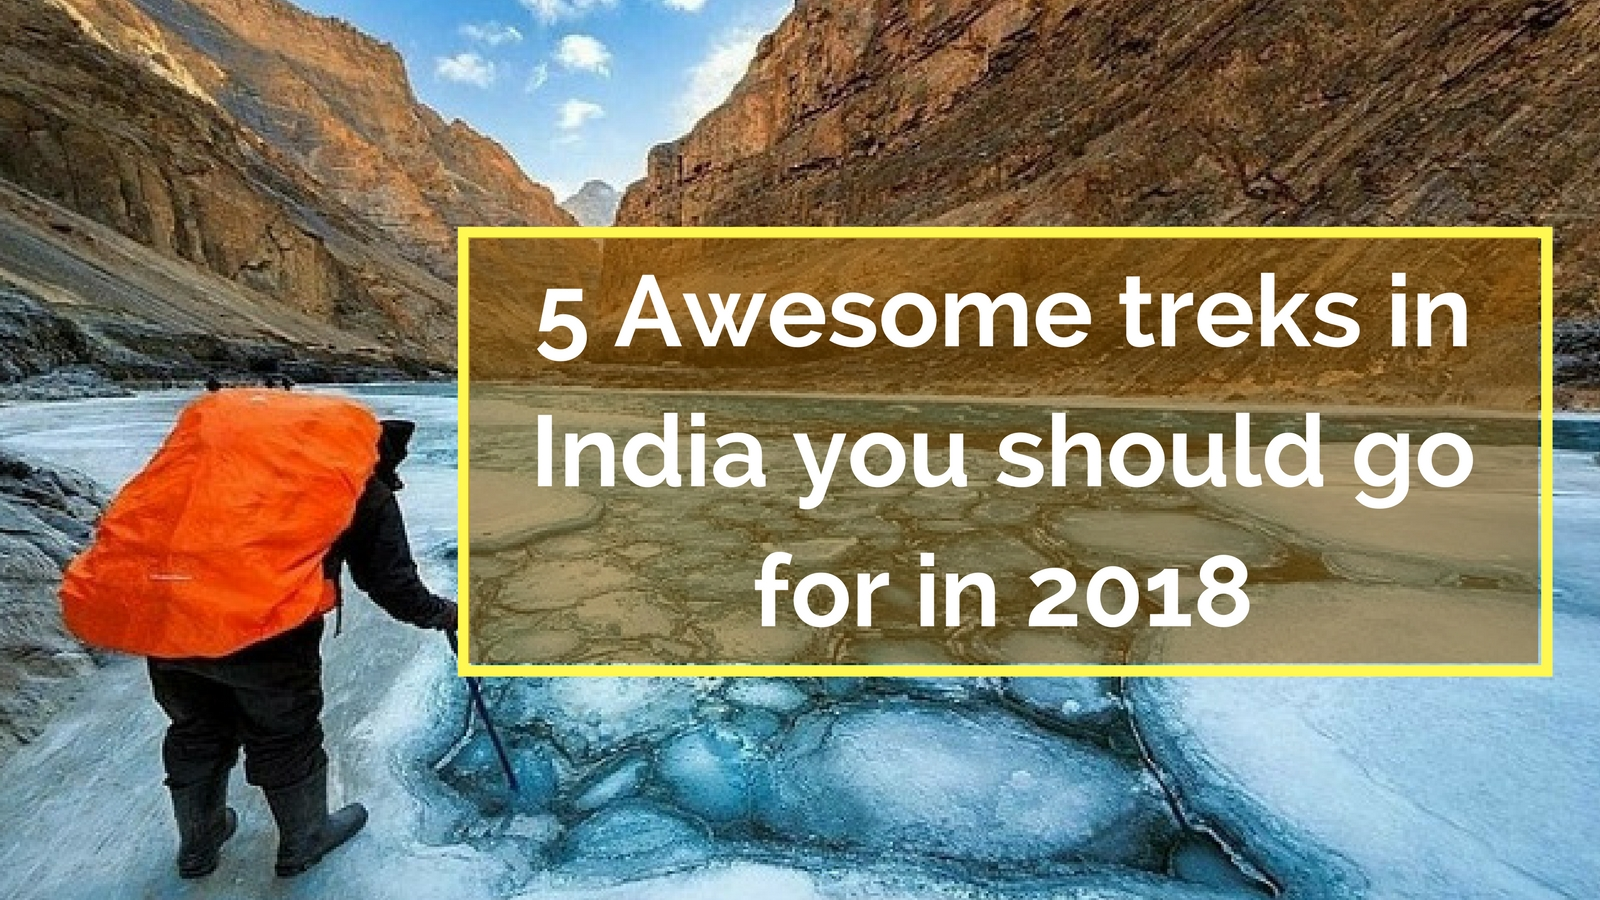 5 Awesome treks in India you should go for in 2018